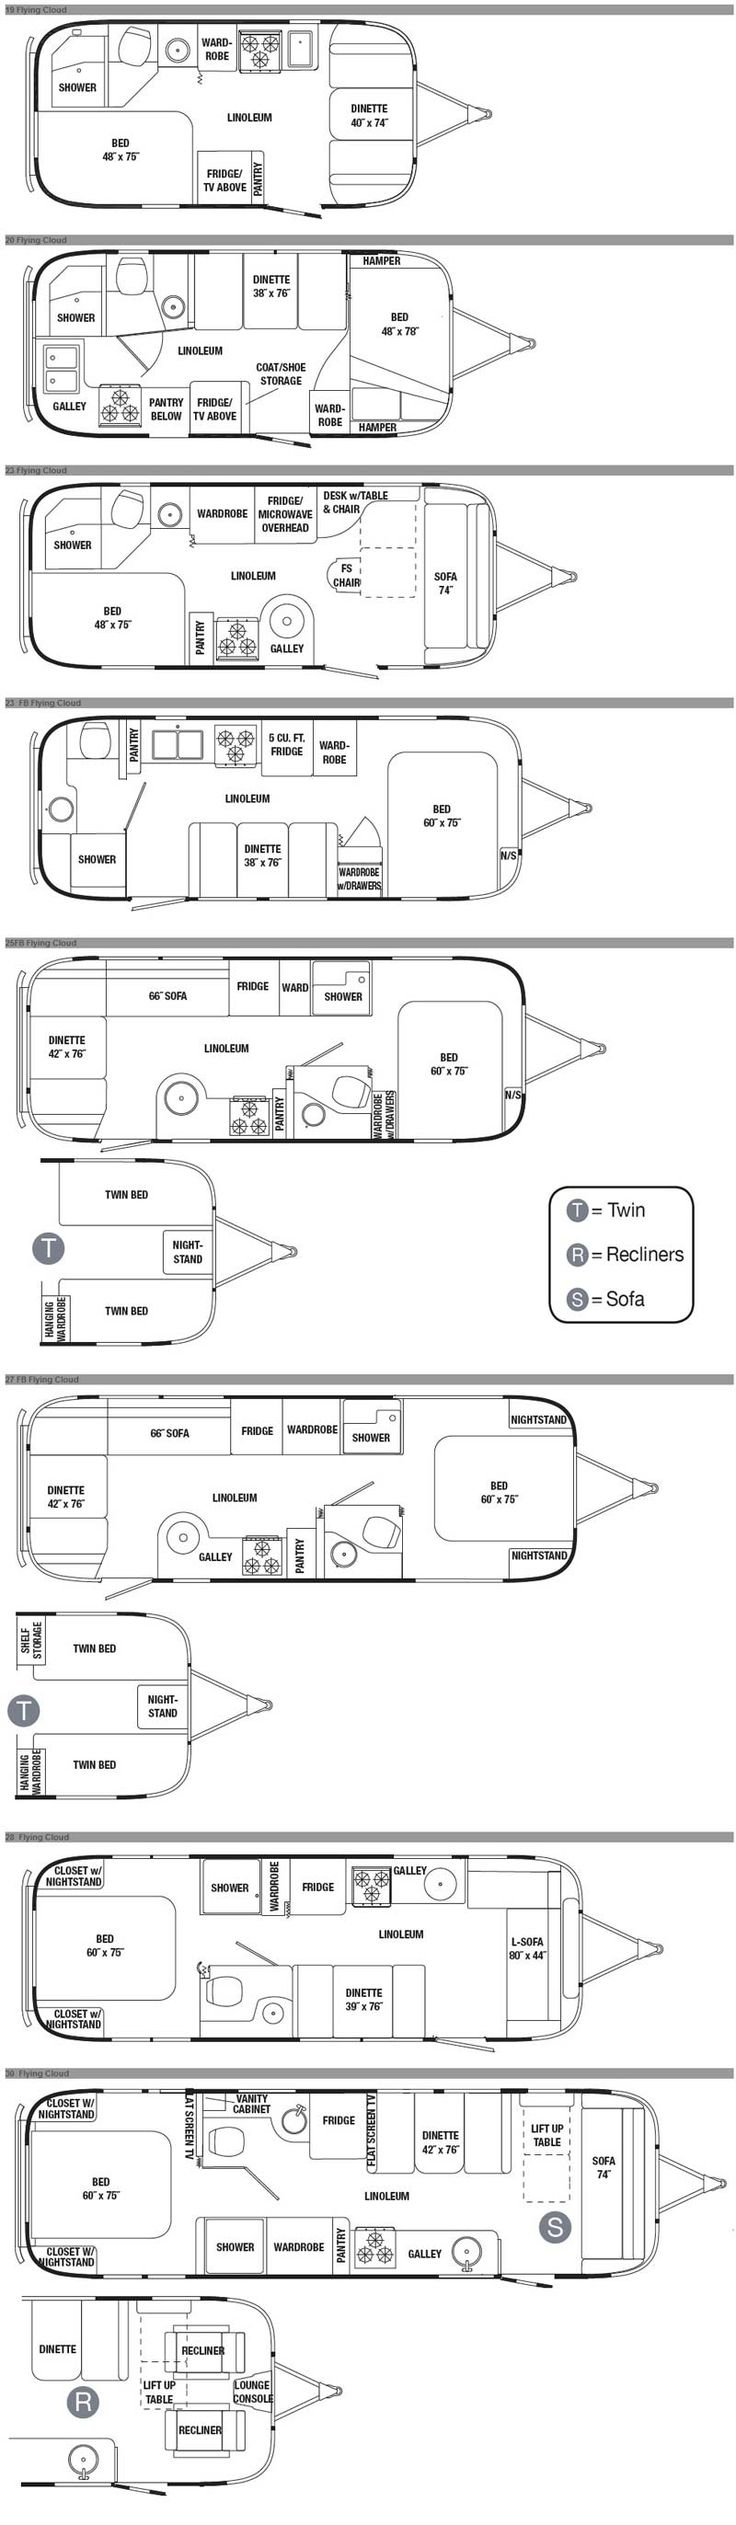 Airstream Flying Cloud travel trailer floorplans - 2012 inigoscout.com